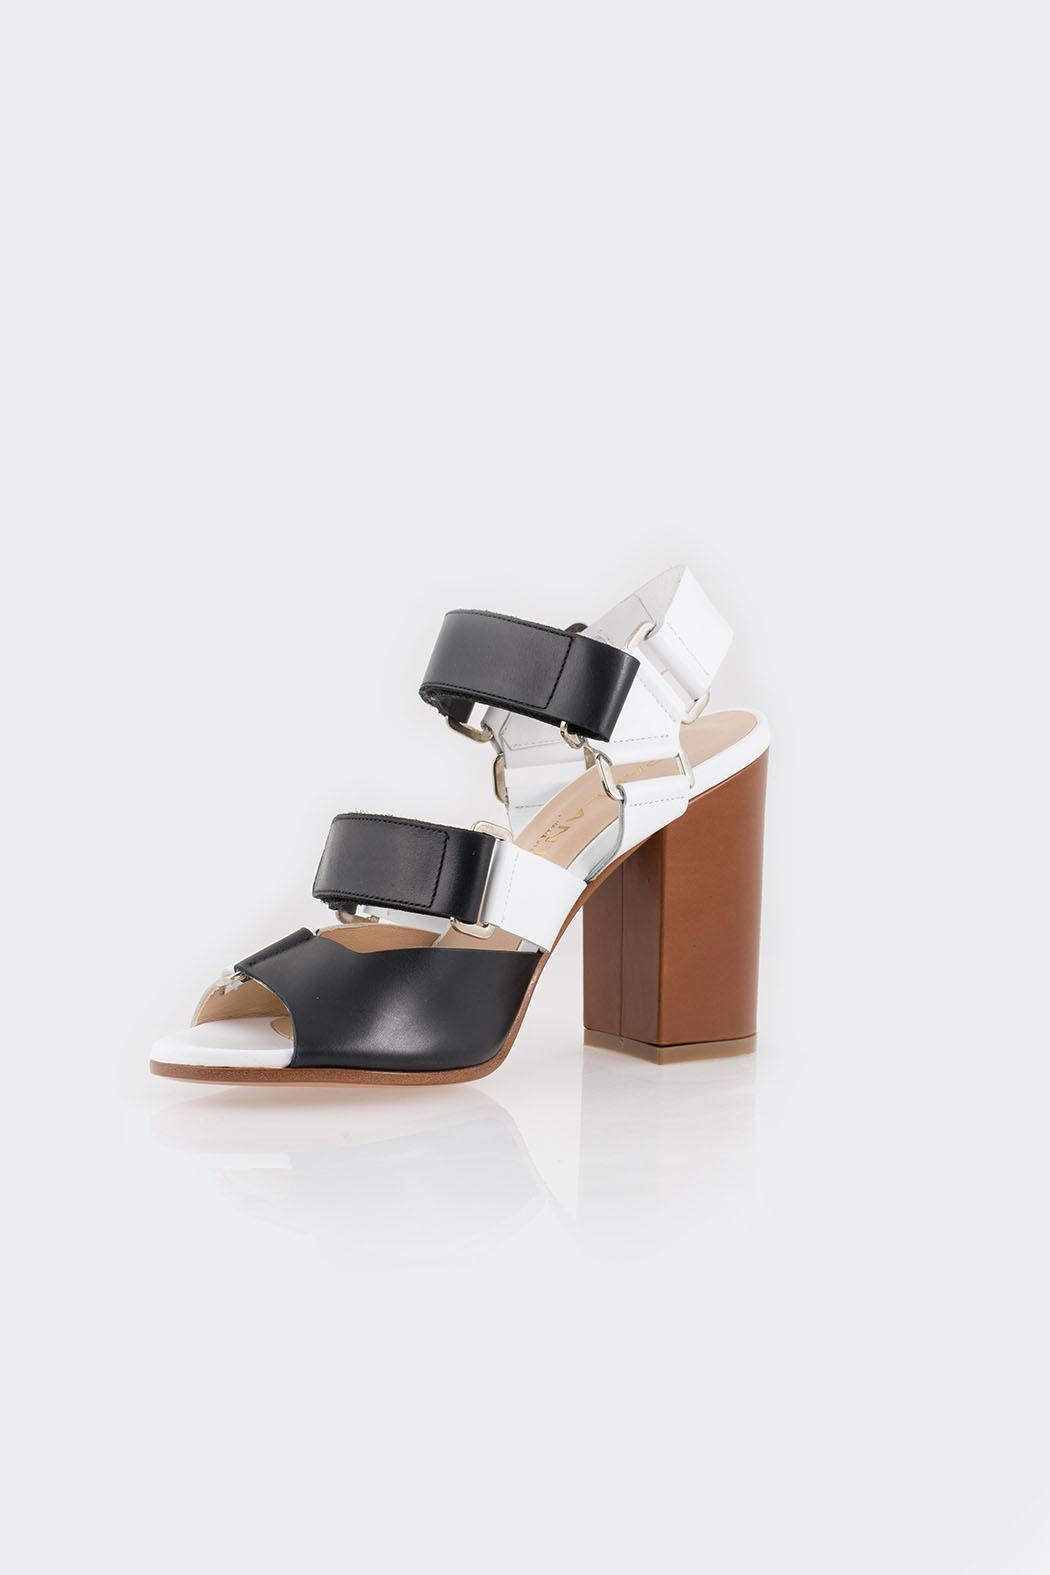 fe6b78e1bb7 Parlanti Block Heel from Sydney by White Paire — Shoptiques